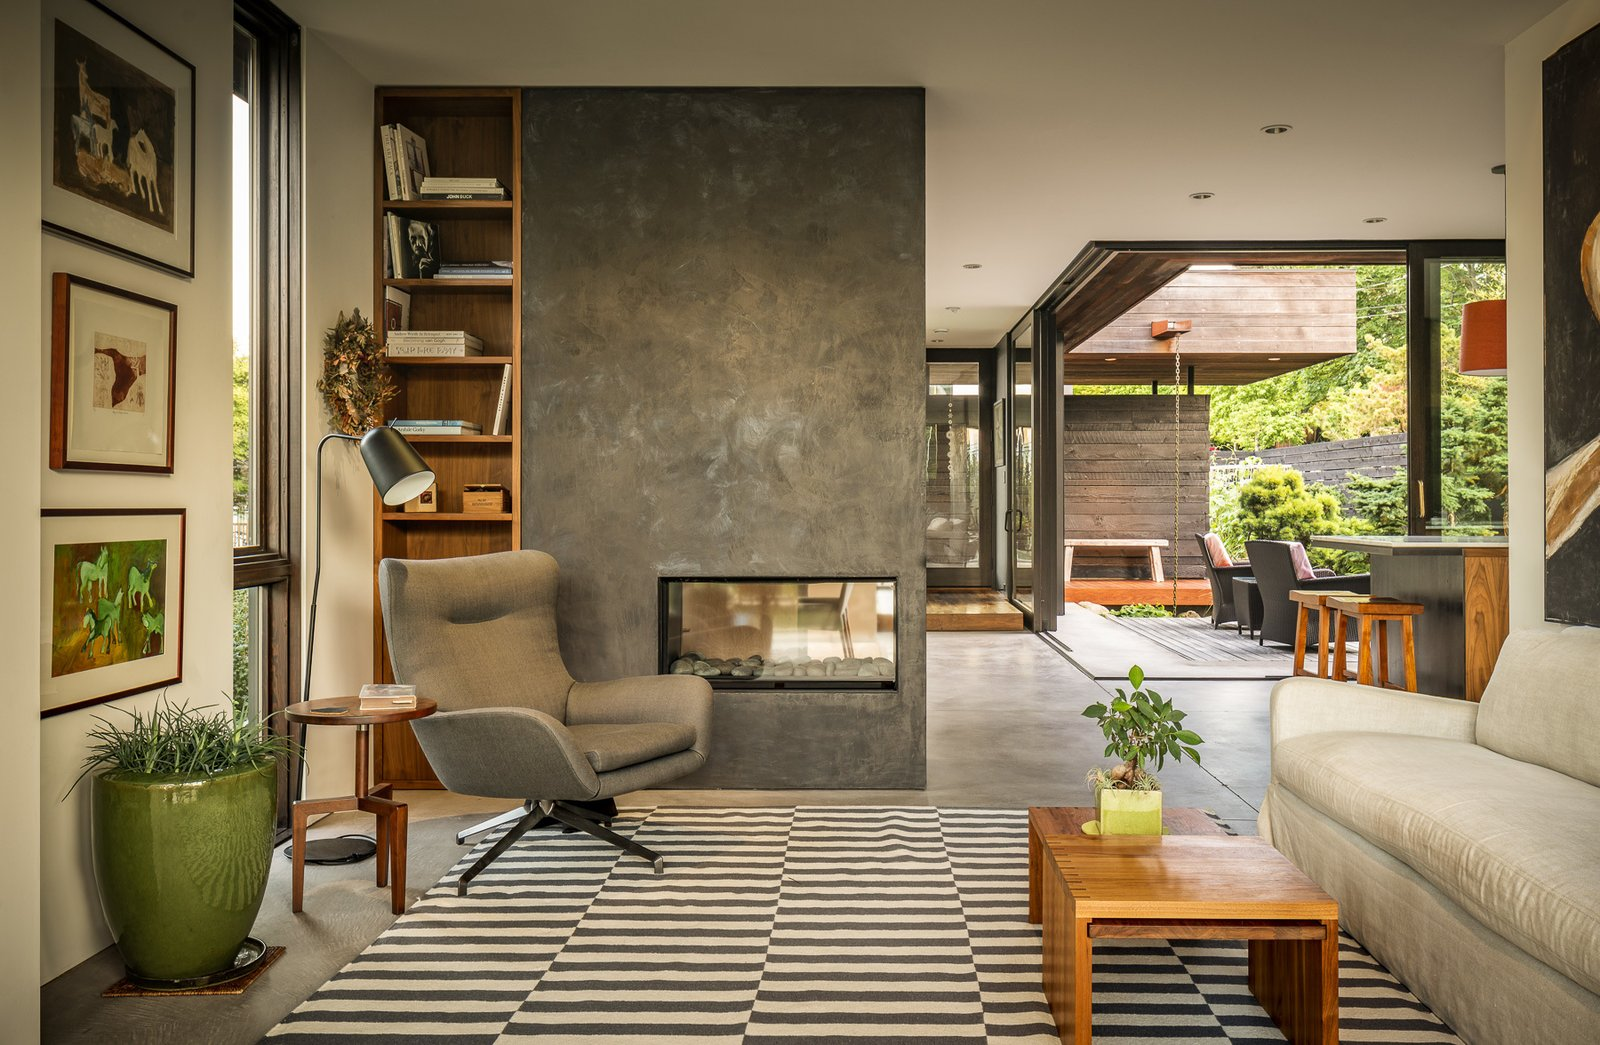 The cozy family room occupies a corner opposite from the courtyard. A full-height window and built-in bookcase flank a multisided fireplace.